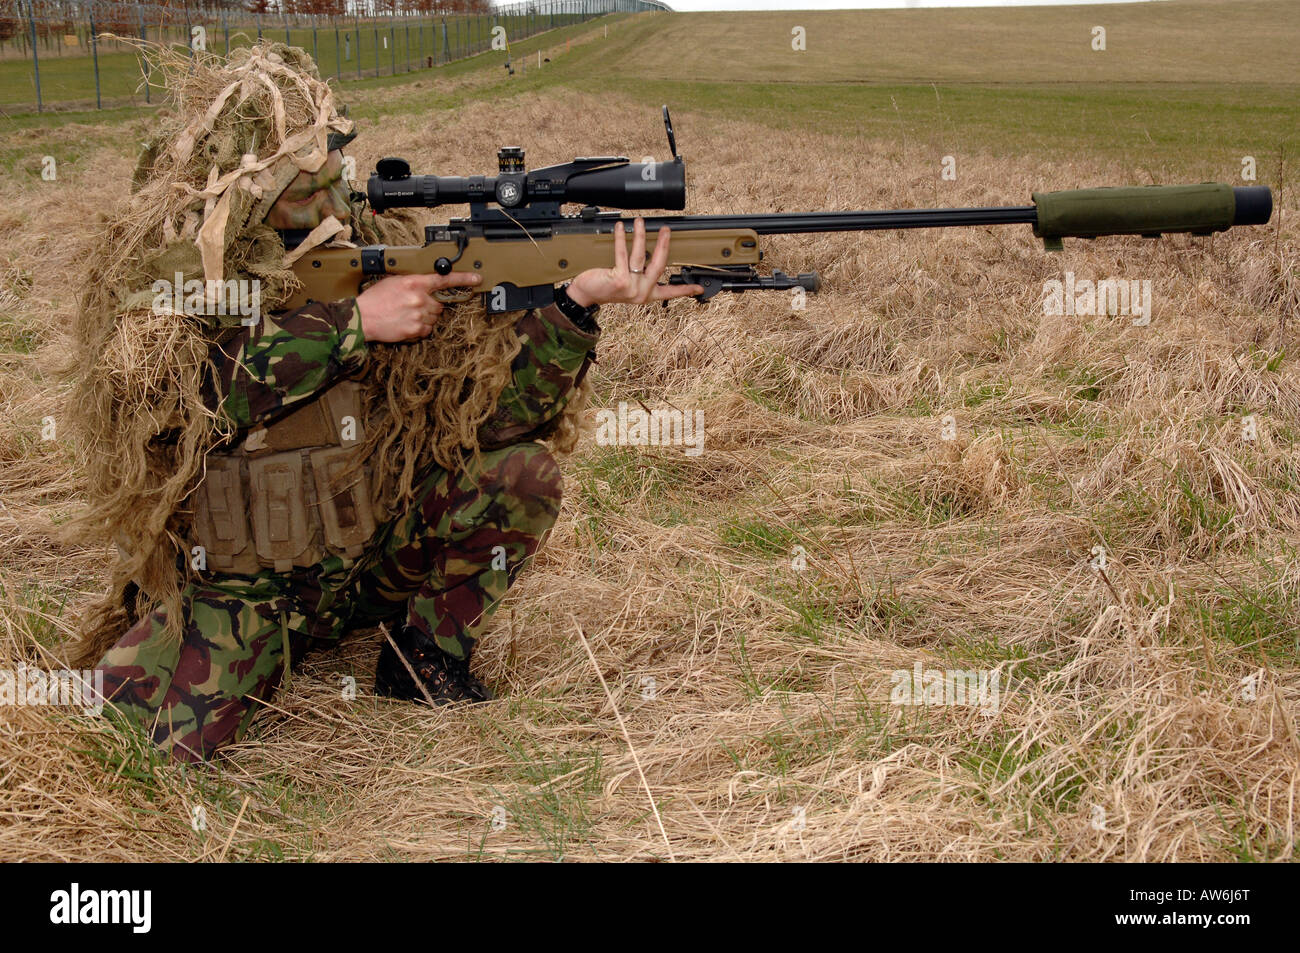 British Infantryman with a long range sniper rifle L115A3 which has a killing capability from over a mile. - Stock Image